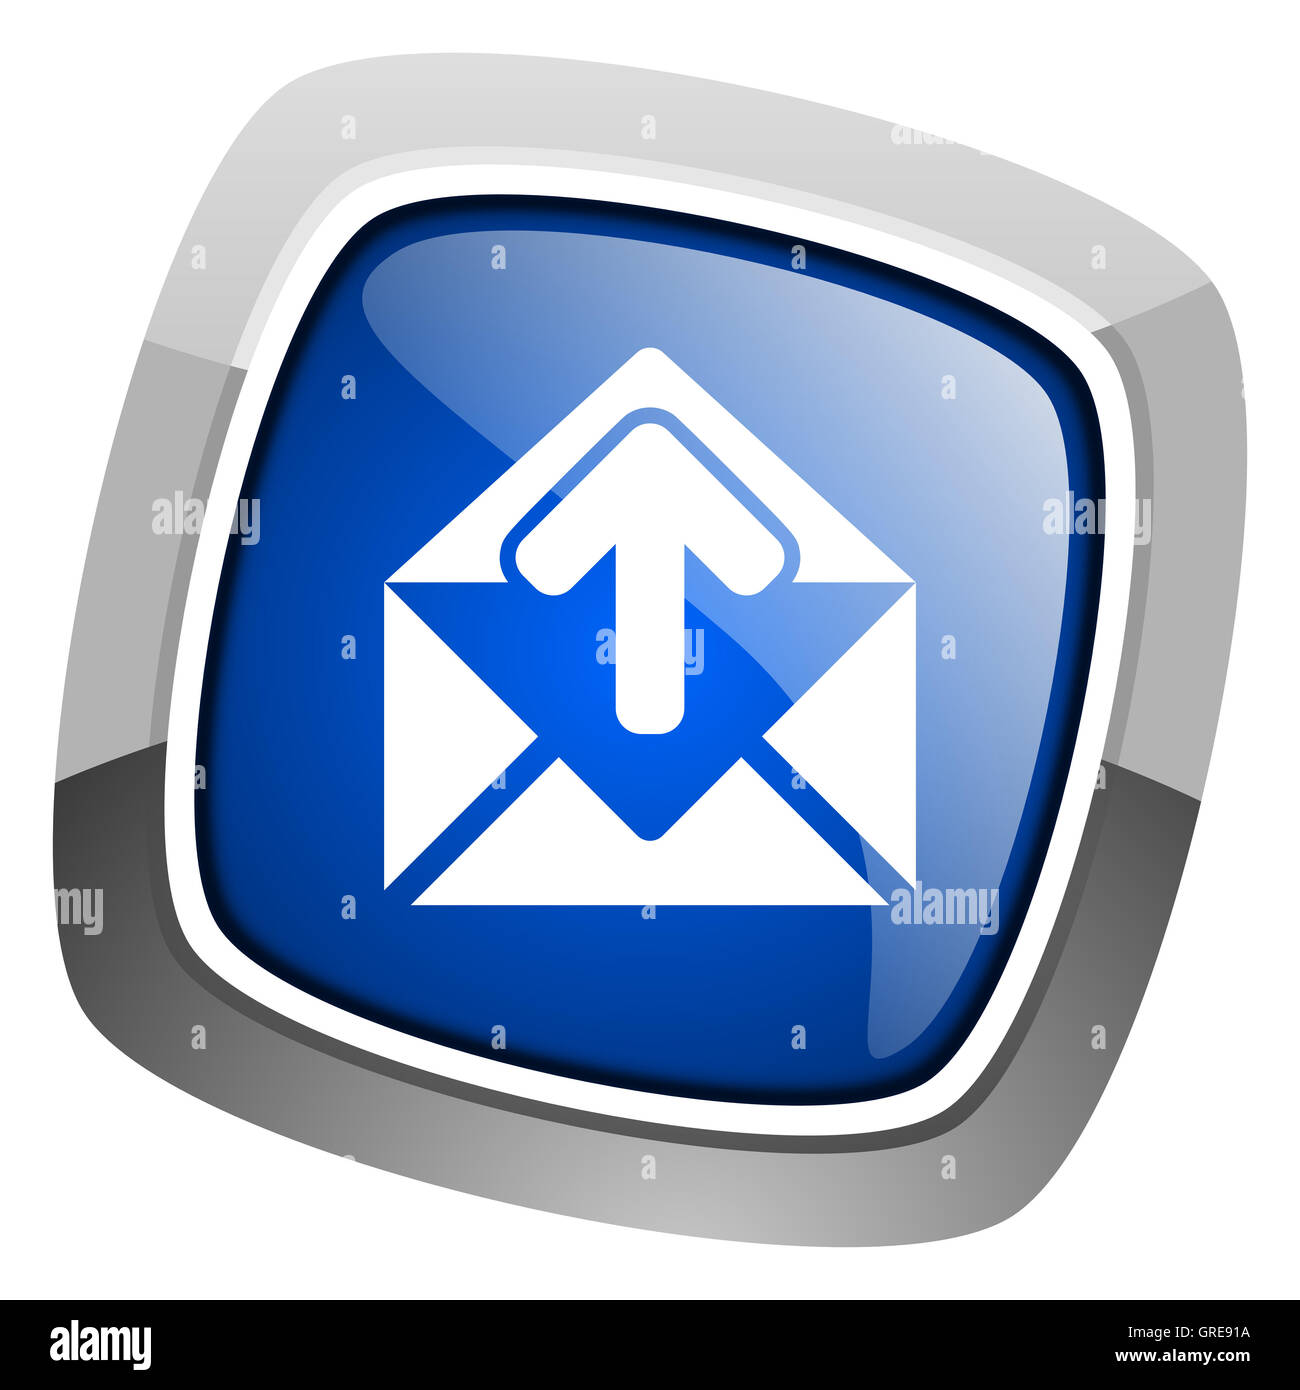 mail icon - Stock Image